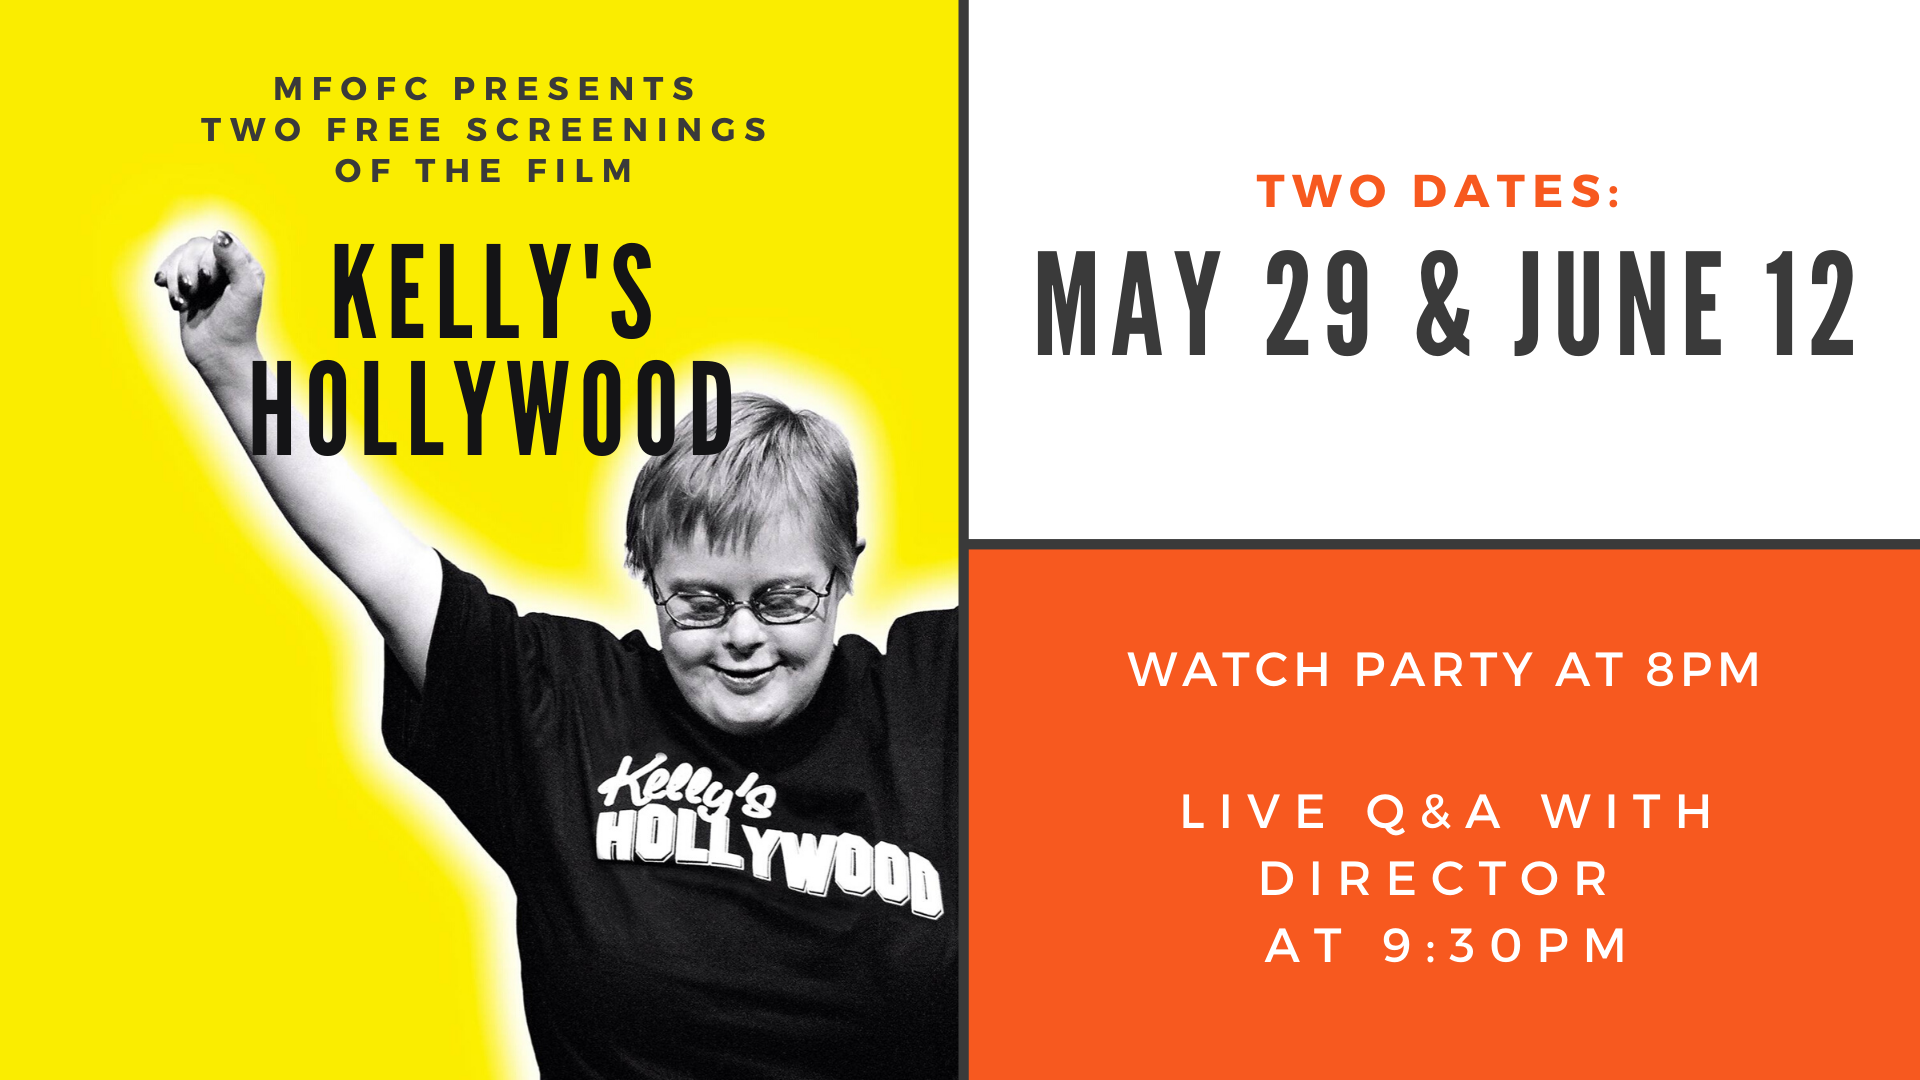 MFOFC presents two free screenings of Kelly's Hollywood